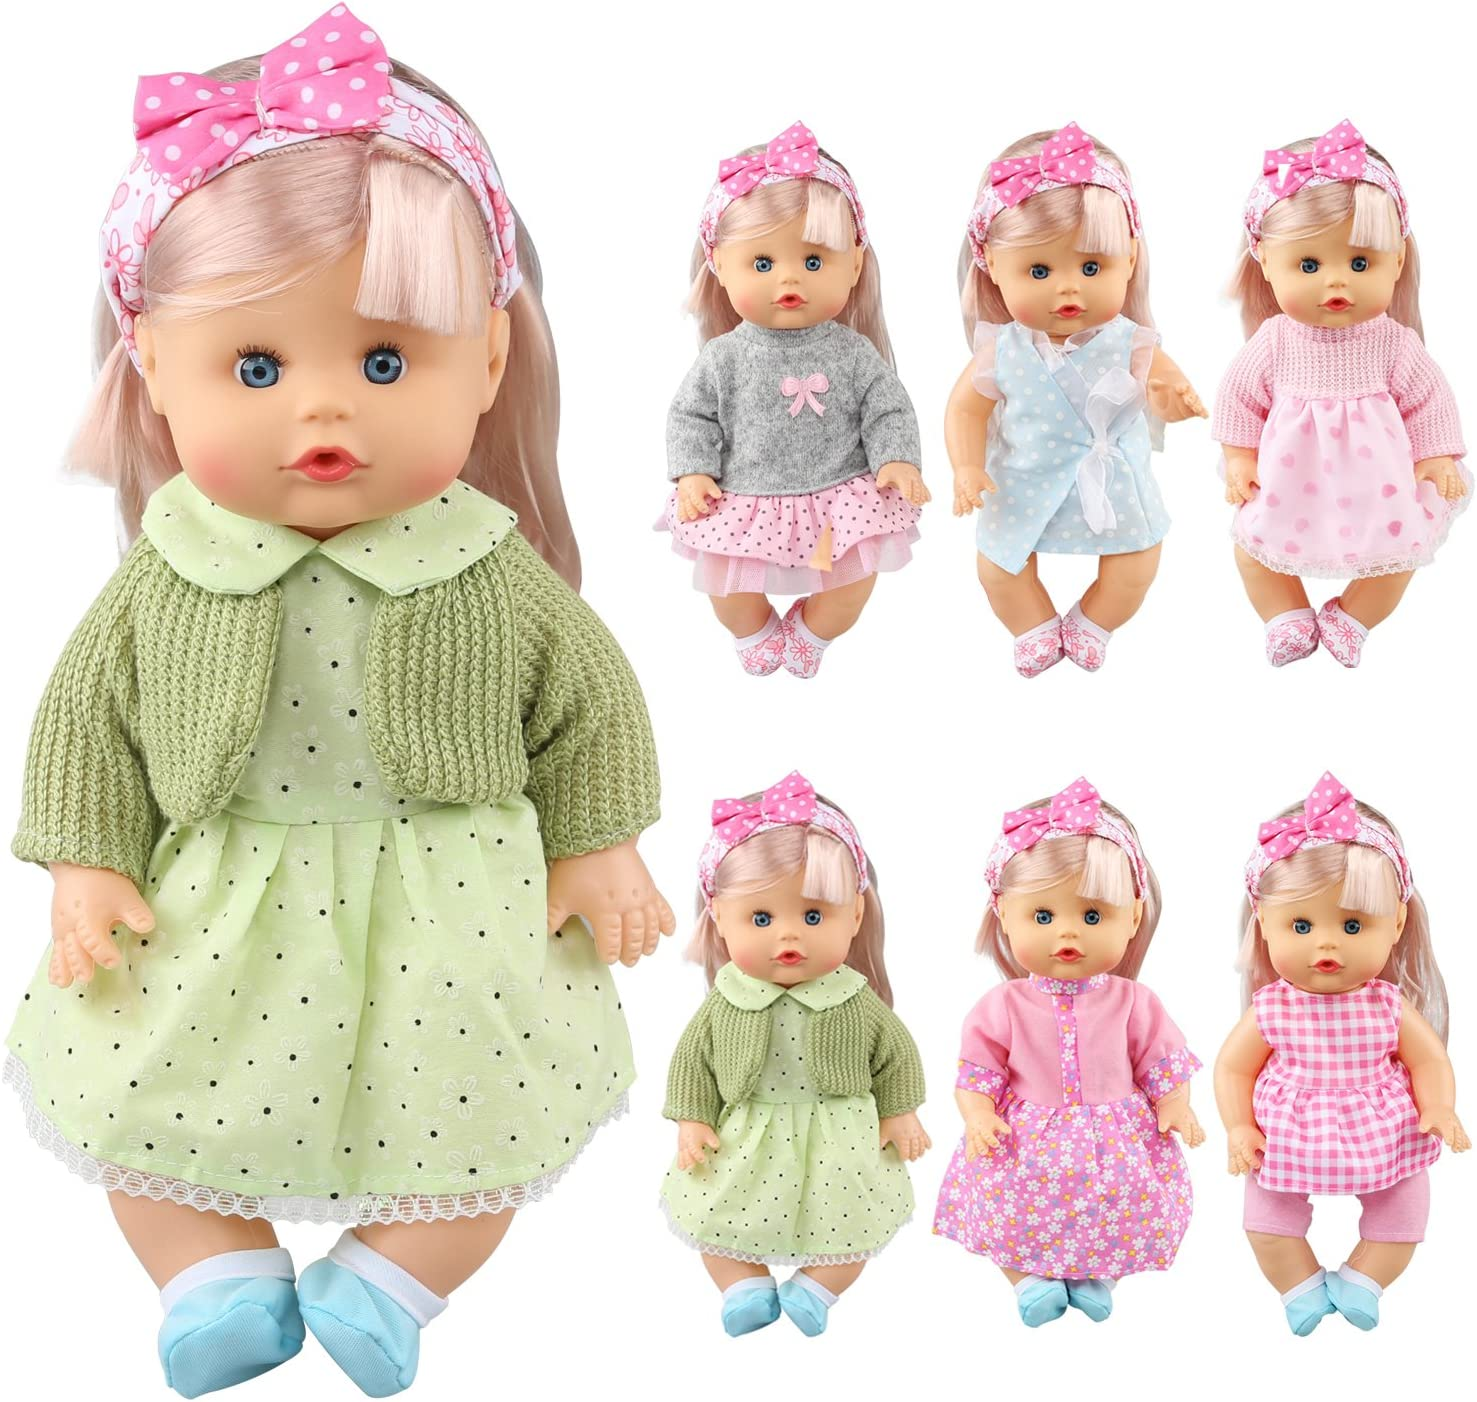 Amazon.com: JING SHOW BUSSINESS Pack of 6 Alive Lovely Baby Gown Dress Clothes  Accessories Outfits Fits 12inch Doll Bitty Baby Doll: Toys & Games